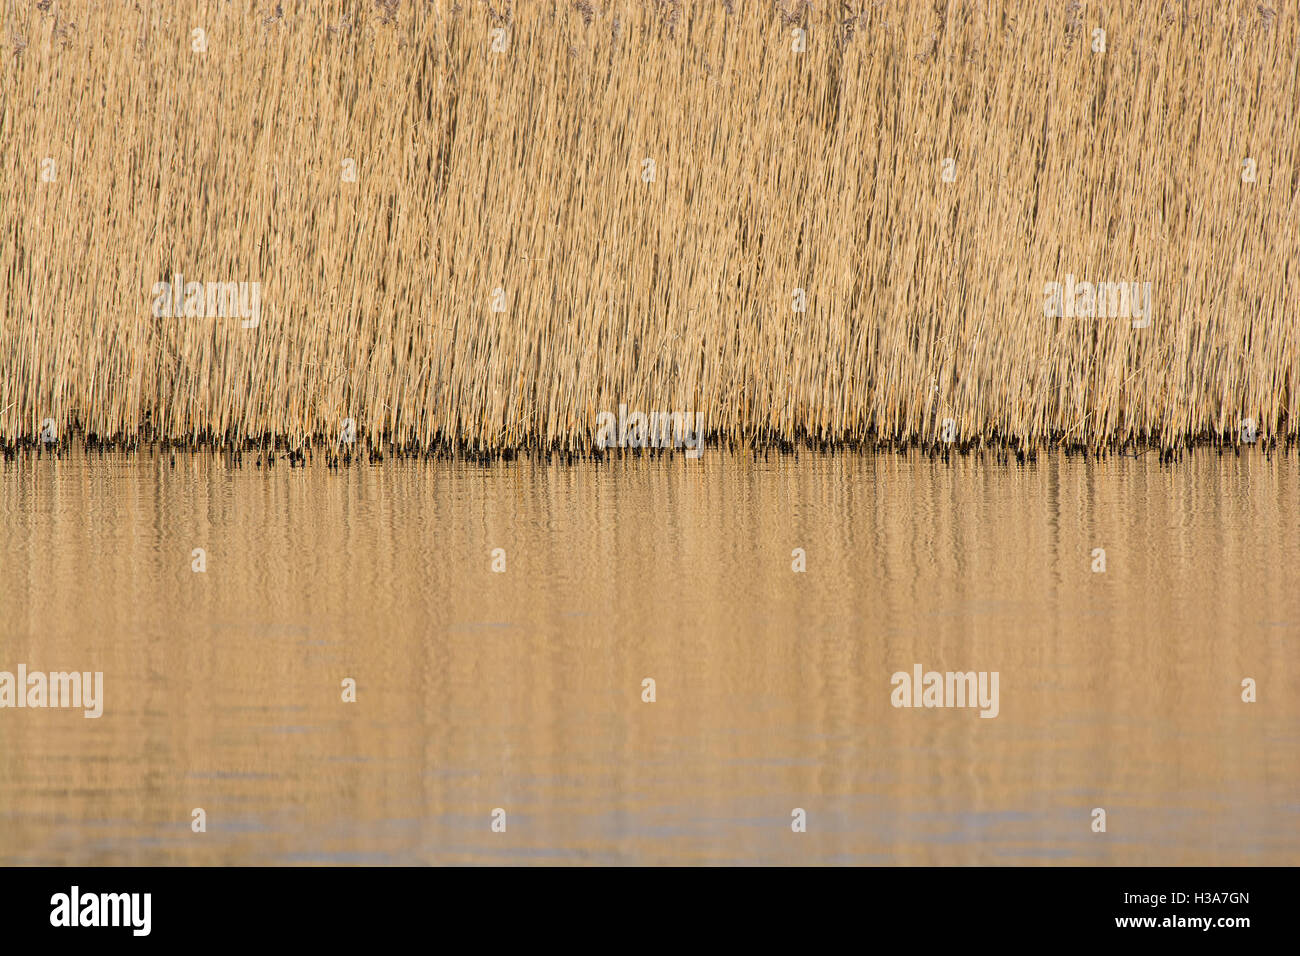 reedbed lit by evening sun reflected in lake in Lancashire, UK - Stock Image